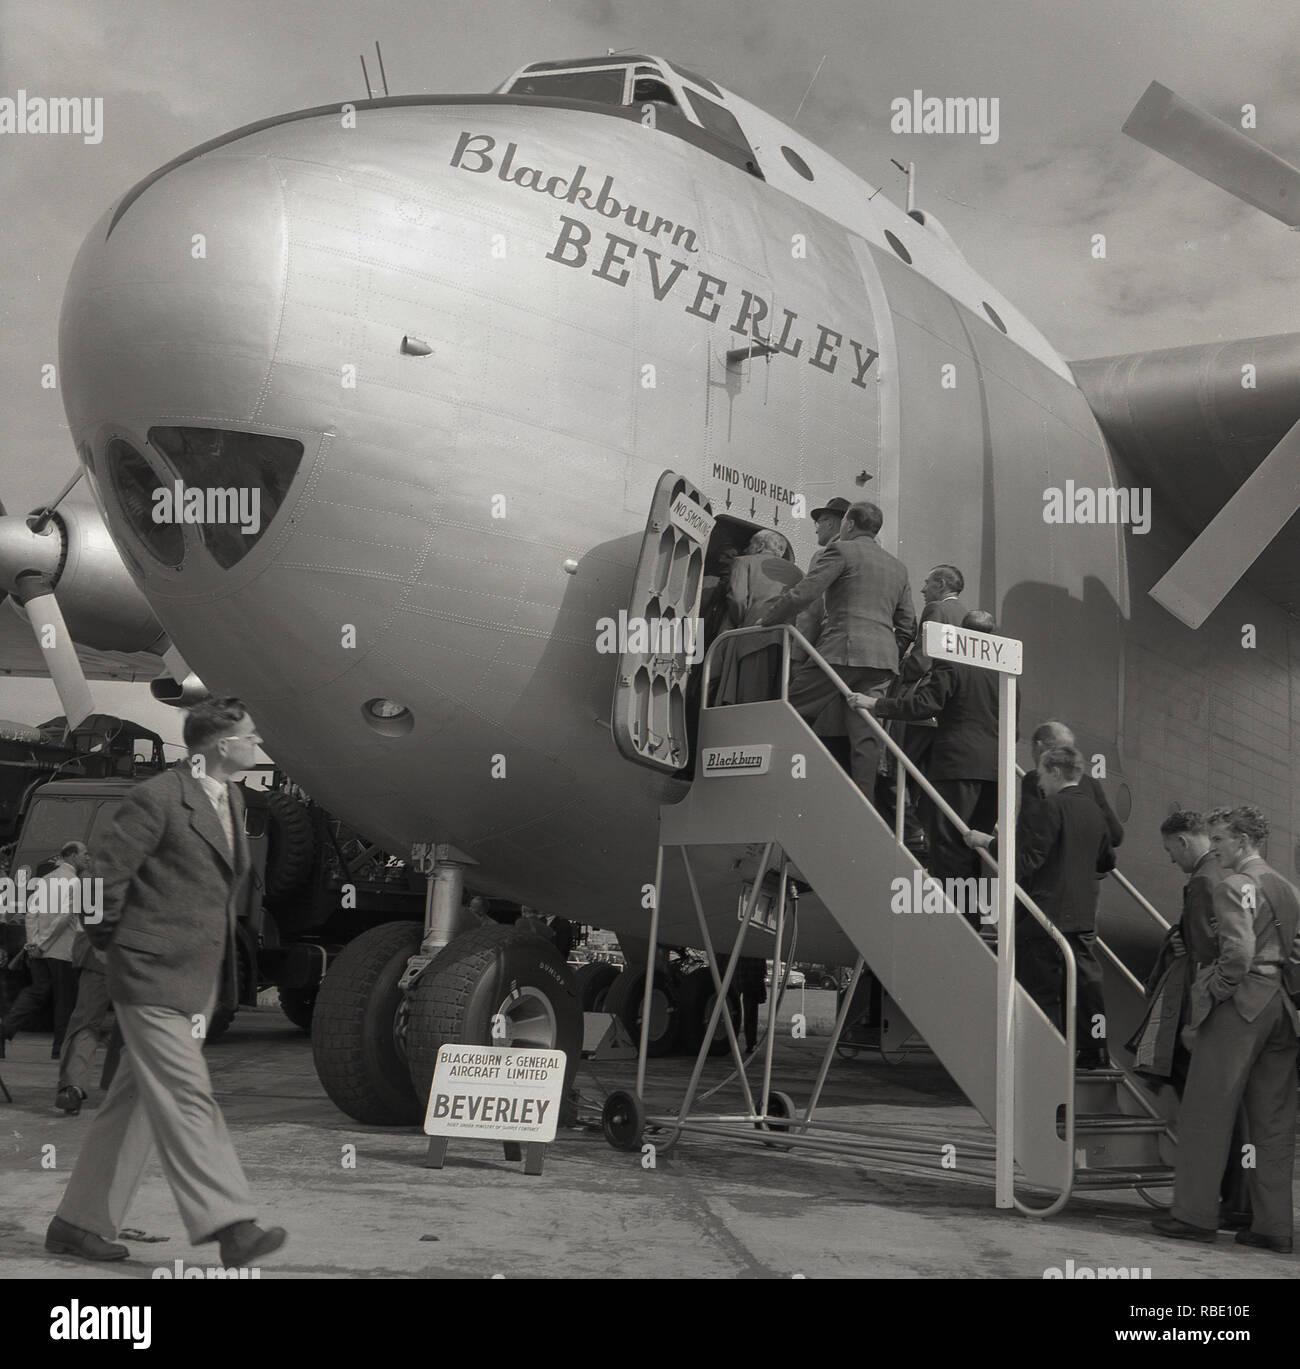 1950s, Historical, Visitors boarding the British made aircraft, the 'Blackburn B-101 Beverley', This large twin-propelled tactical transport aircraft was built under a 'Ministry of Supply Contract' and used by squadrons of the Royal Air Foruce Transport Commmand. When in service it was the largest aircraft in the RAF.  The Beverleys were all built at Brough in Yorkshire, England. Stock Photo